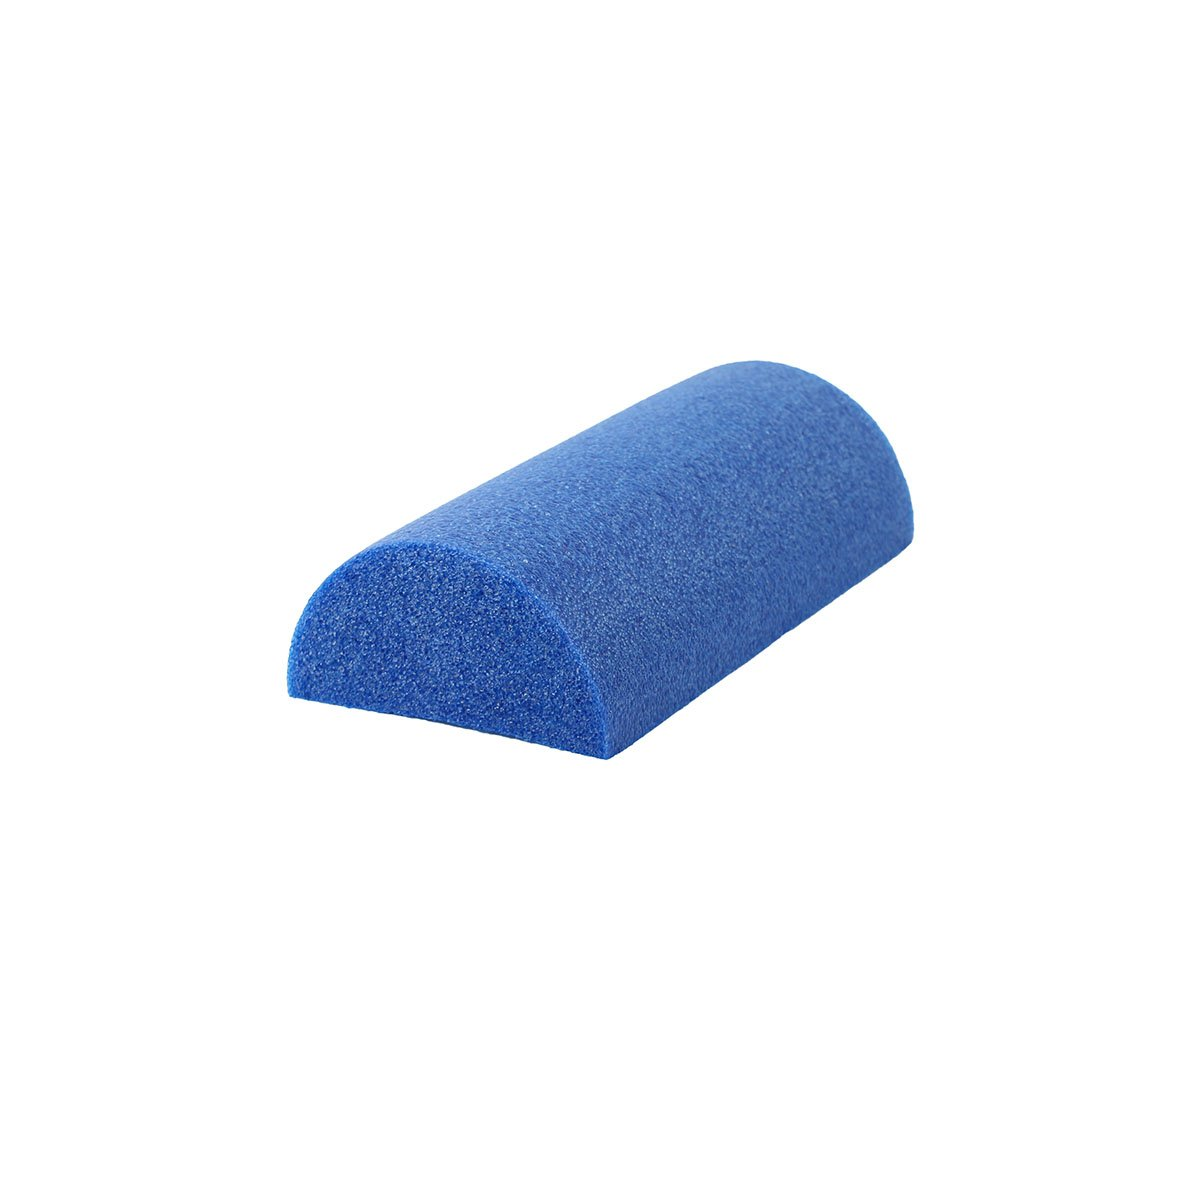 Fabe-302500-cando Plus Foam Roller 6 Inch by 36inch for sale online